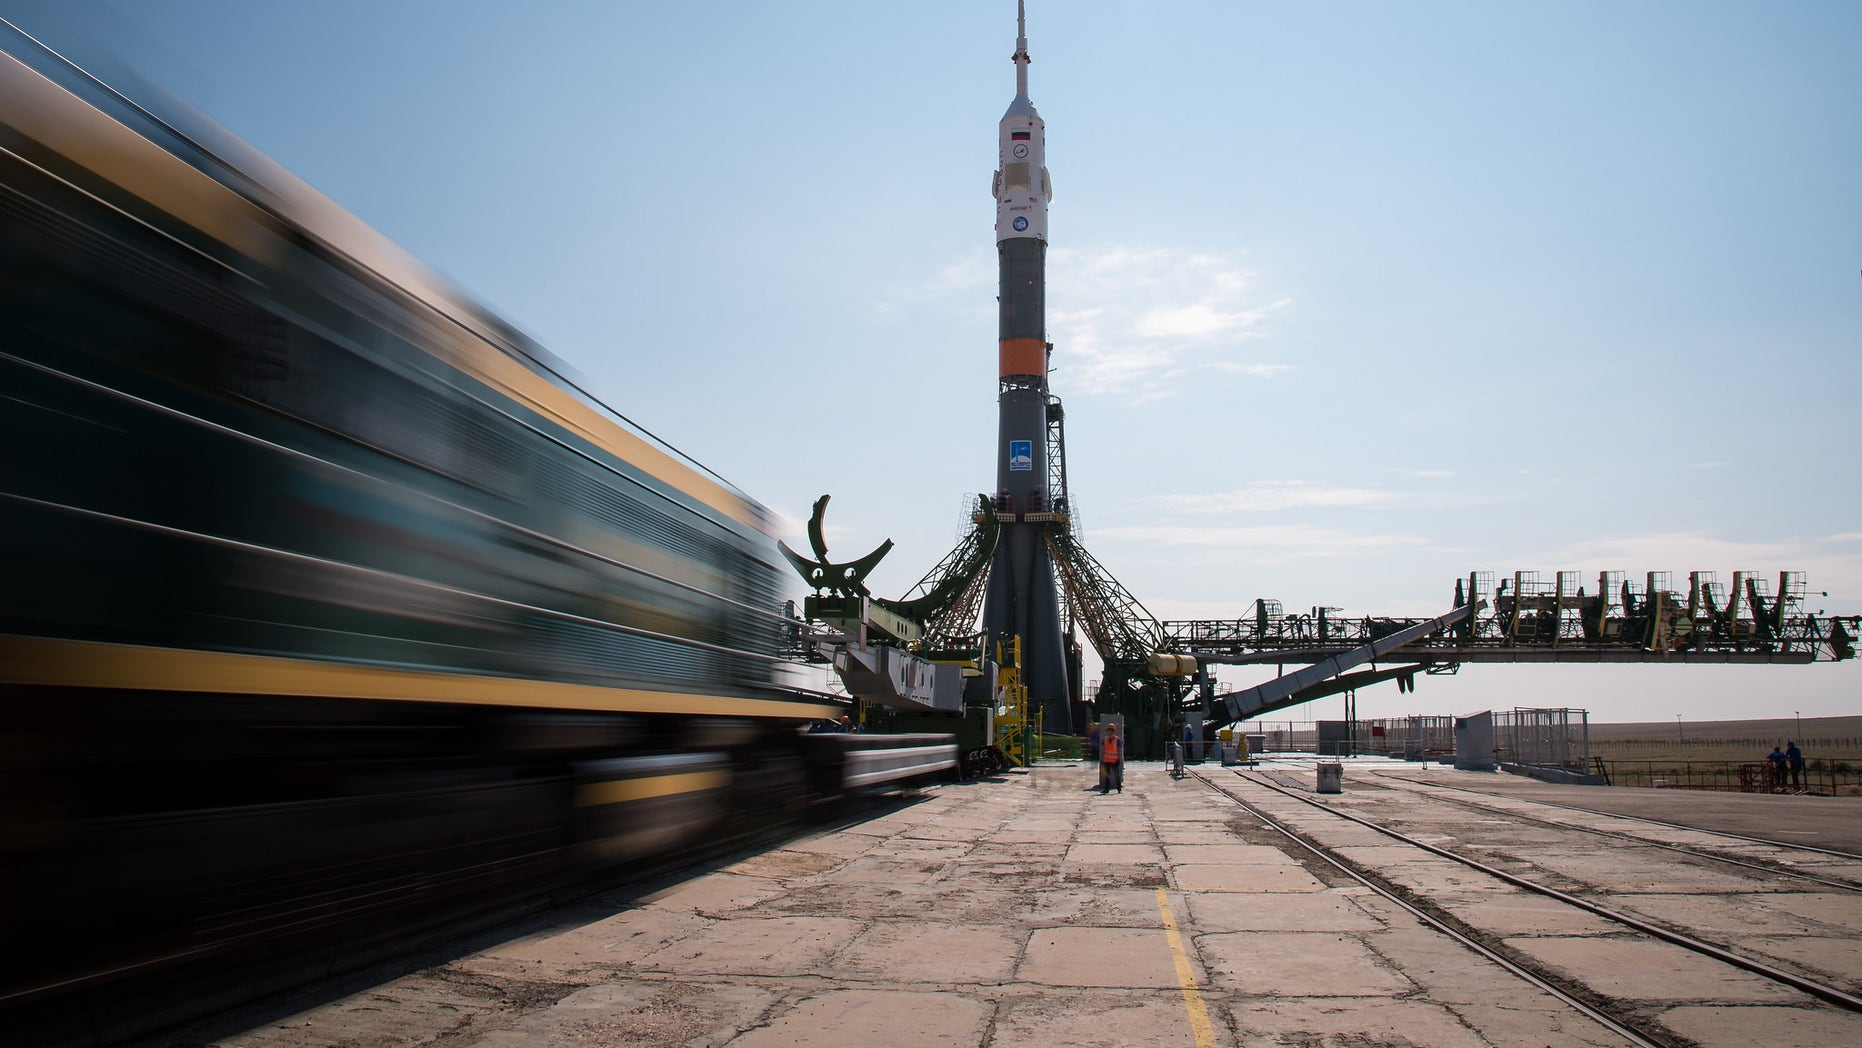 The Soyuz MS-01 spacecraft on the launchpad at the Baikonur Cosmodrome in Kazakhstan on Monday, July 4, 2016. Three crewmembers will make a two-day trip to the International Space Station in the upgraded vehicle.